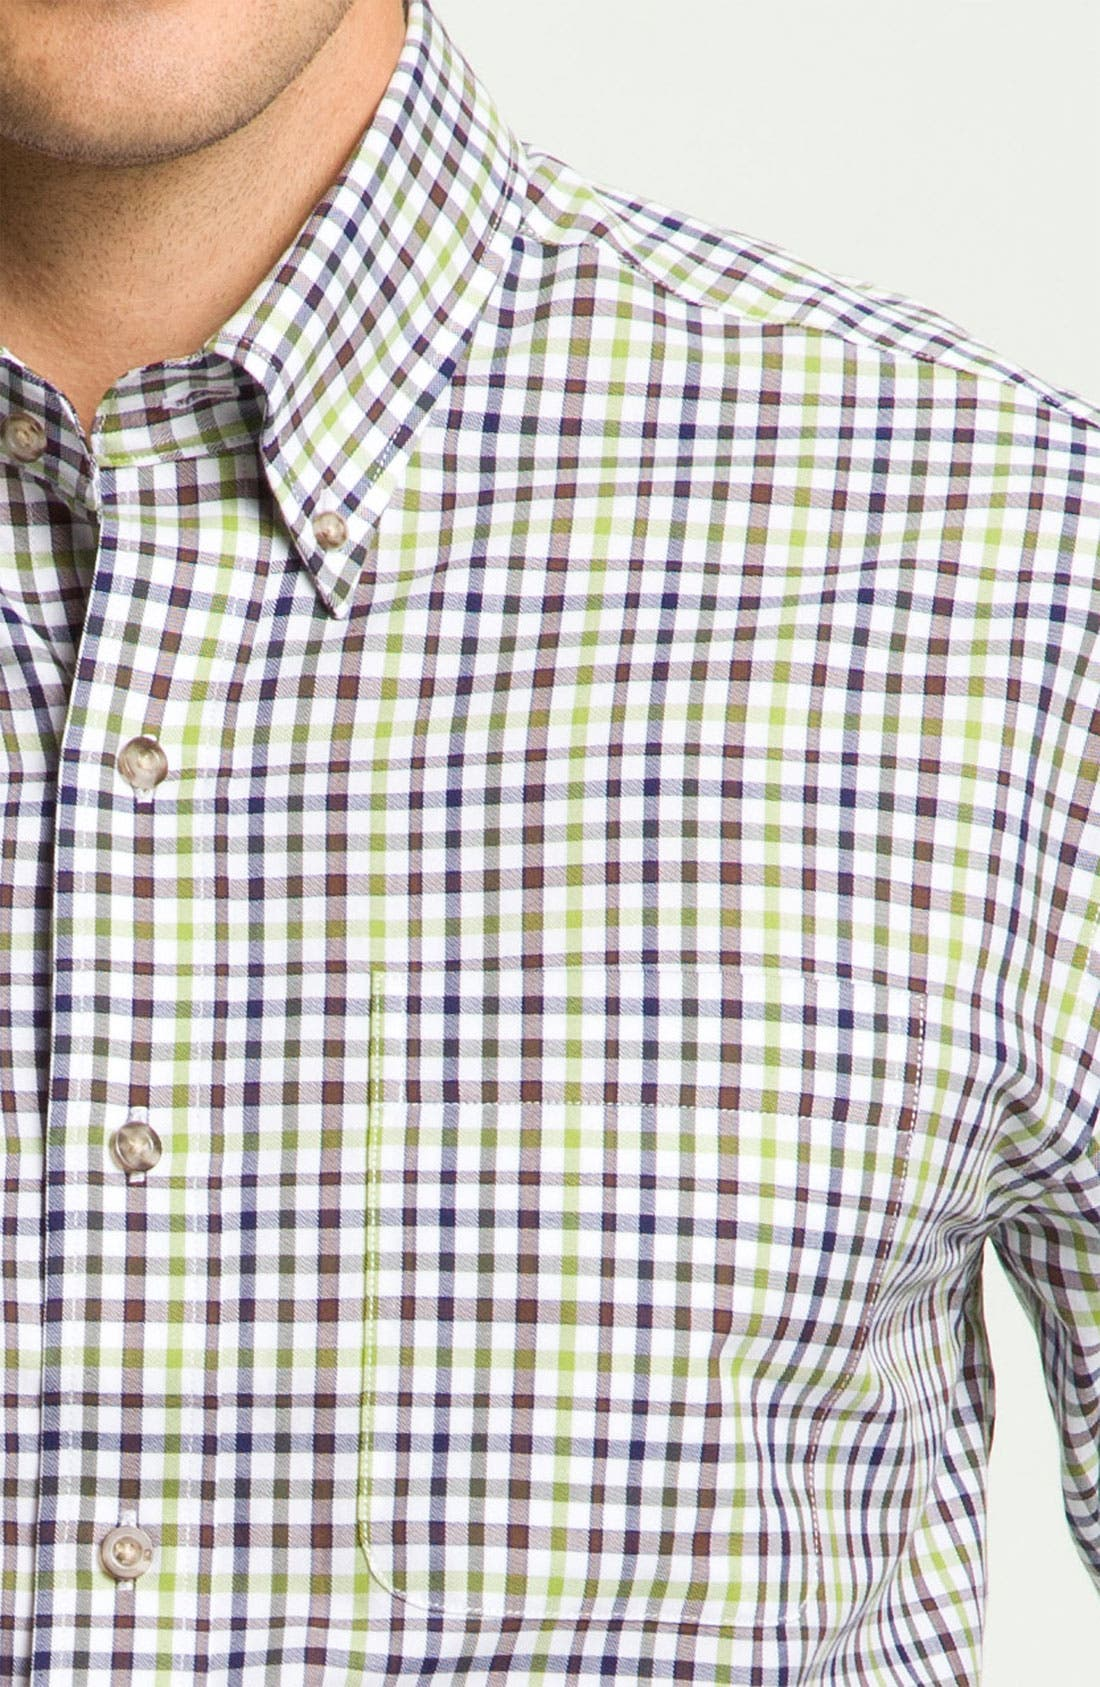 Alternate Image 3  - Cutter & Buck 'Cypress' Plaid Sport Shirt (Big & Tall)